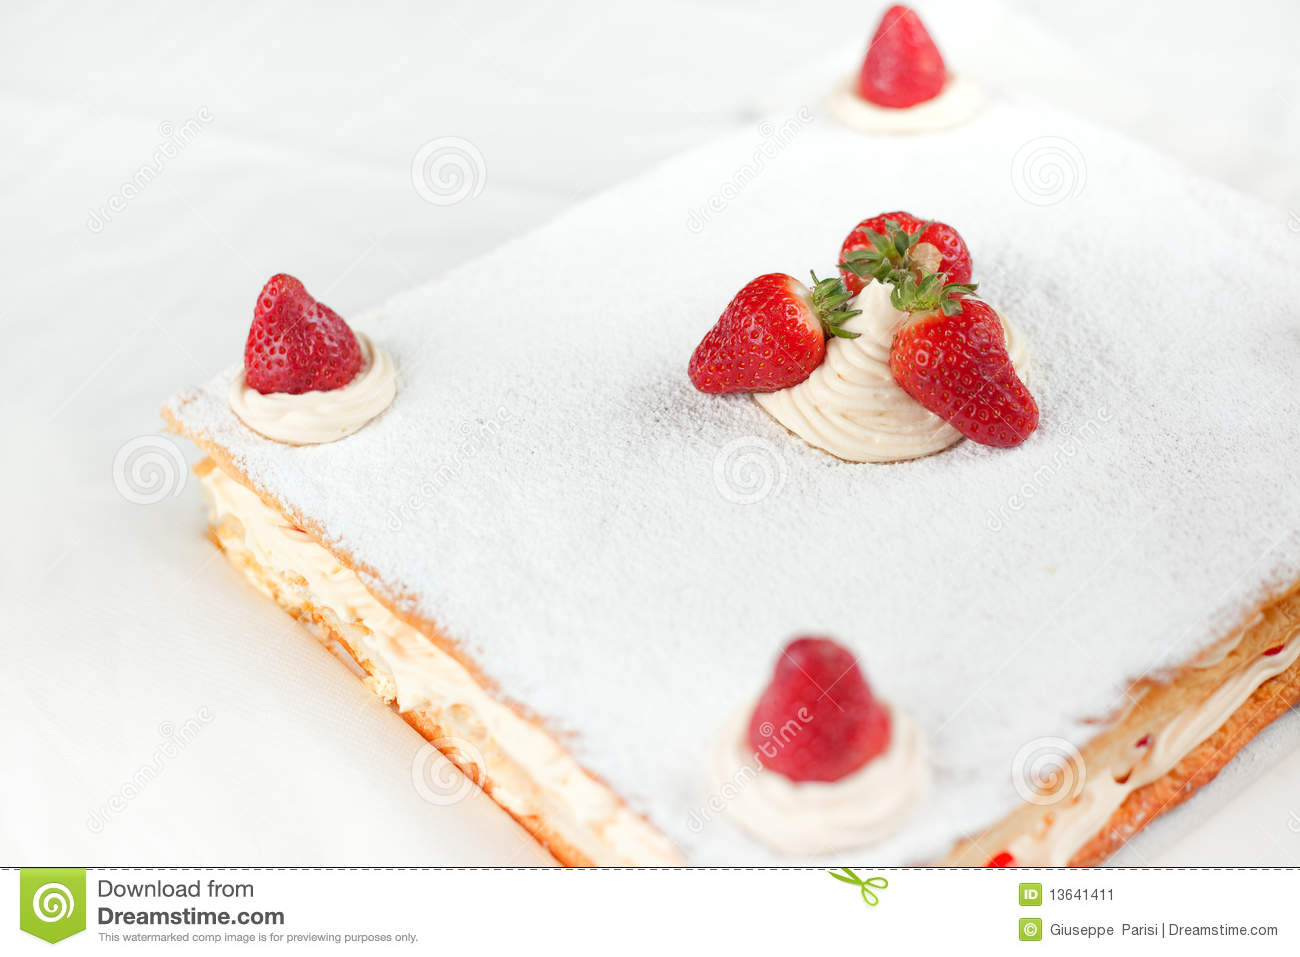 Strawberry Millefeuille Stock Image - Image: 13641411